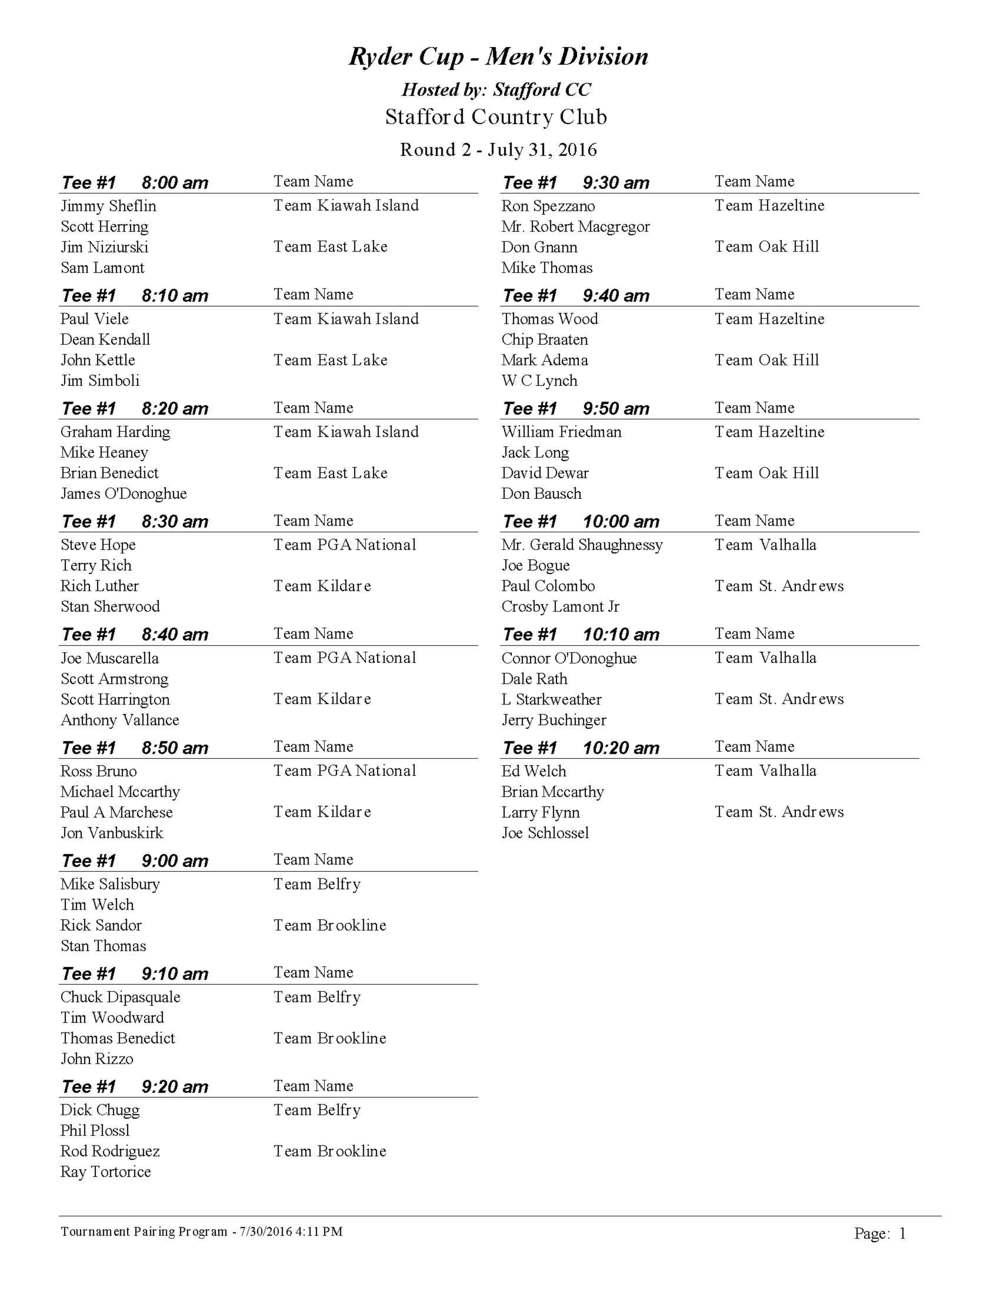 Ryder Cup Tee Times - Men's Division Rd. 2